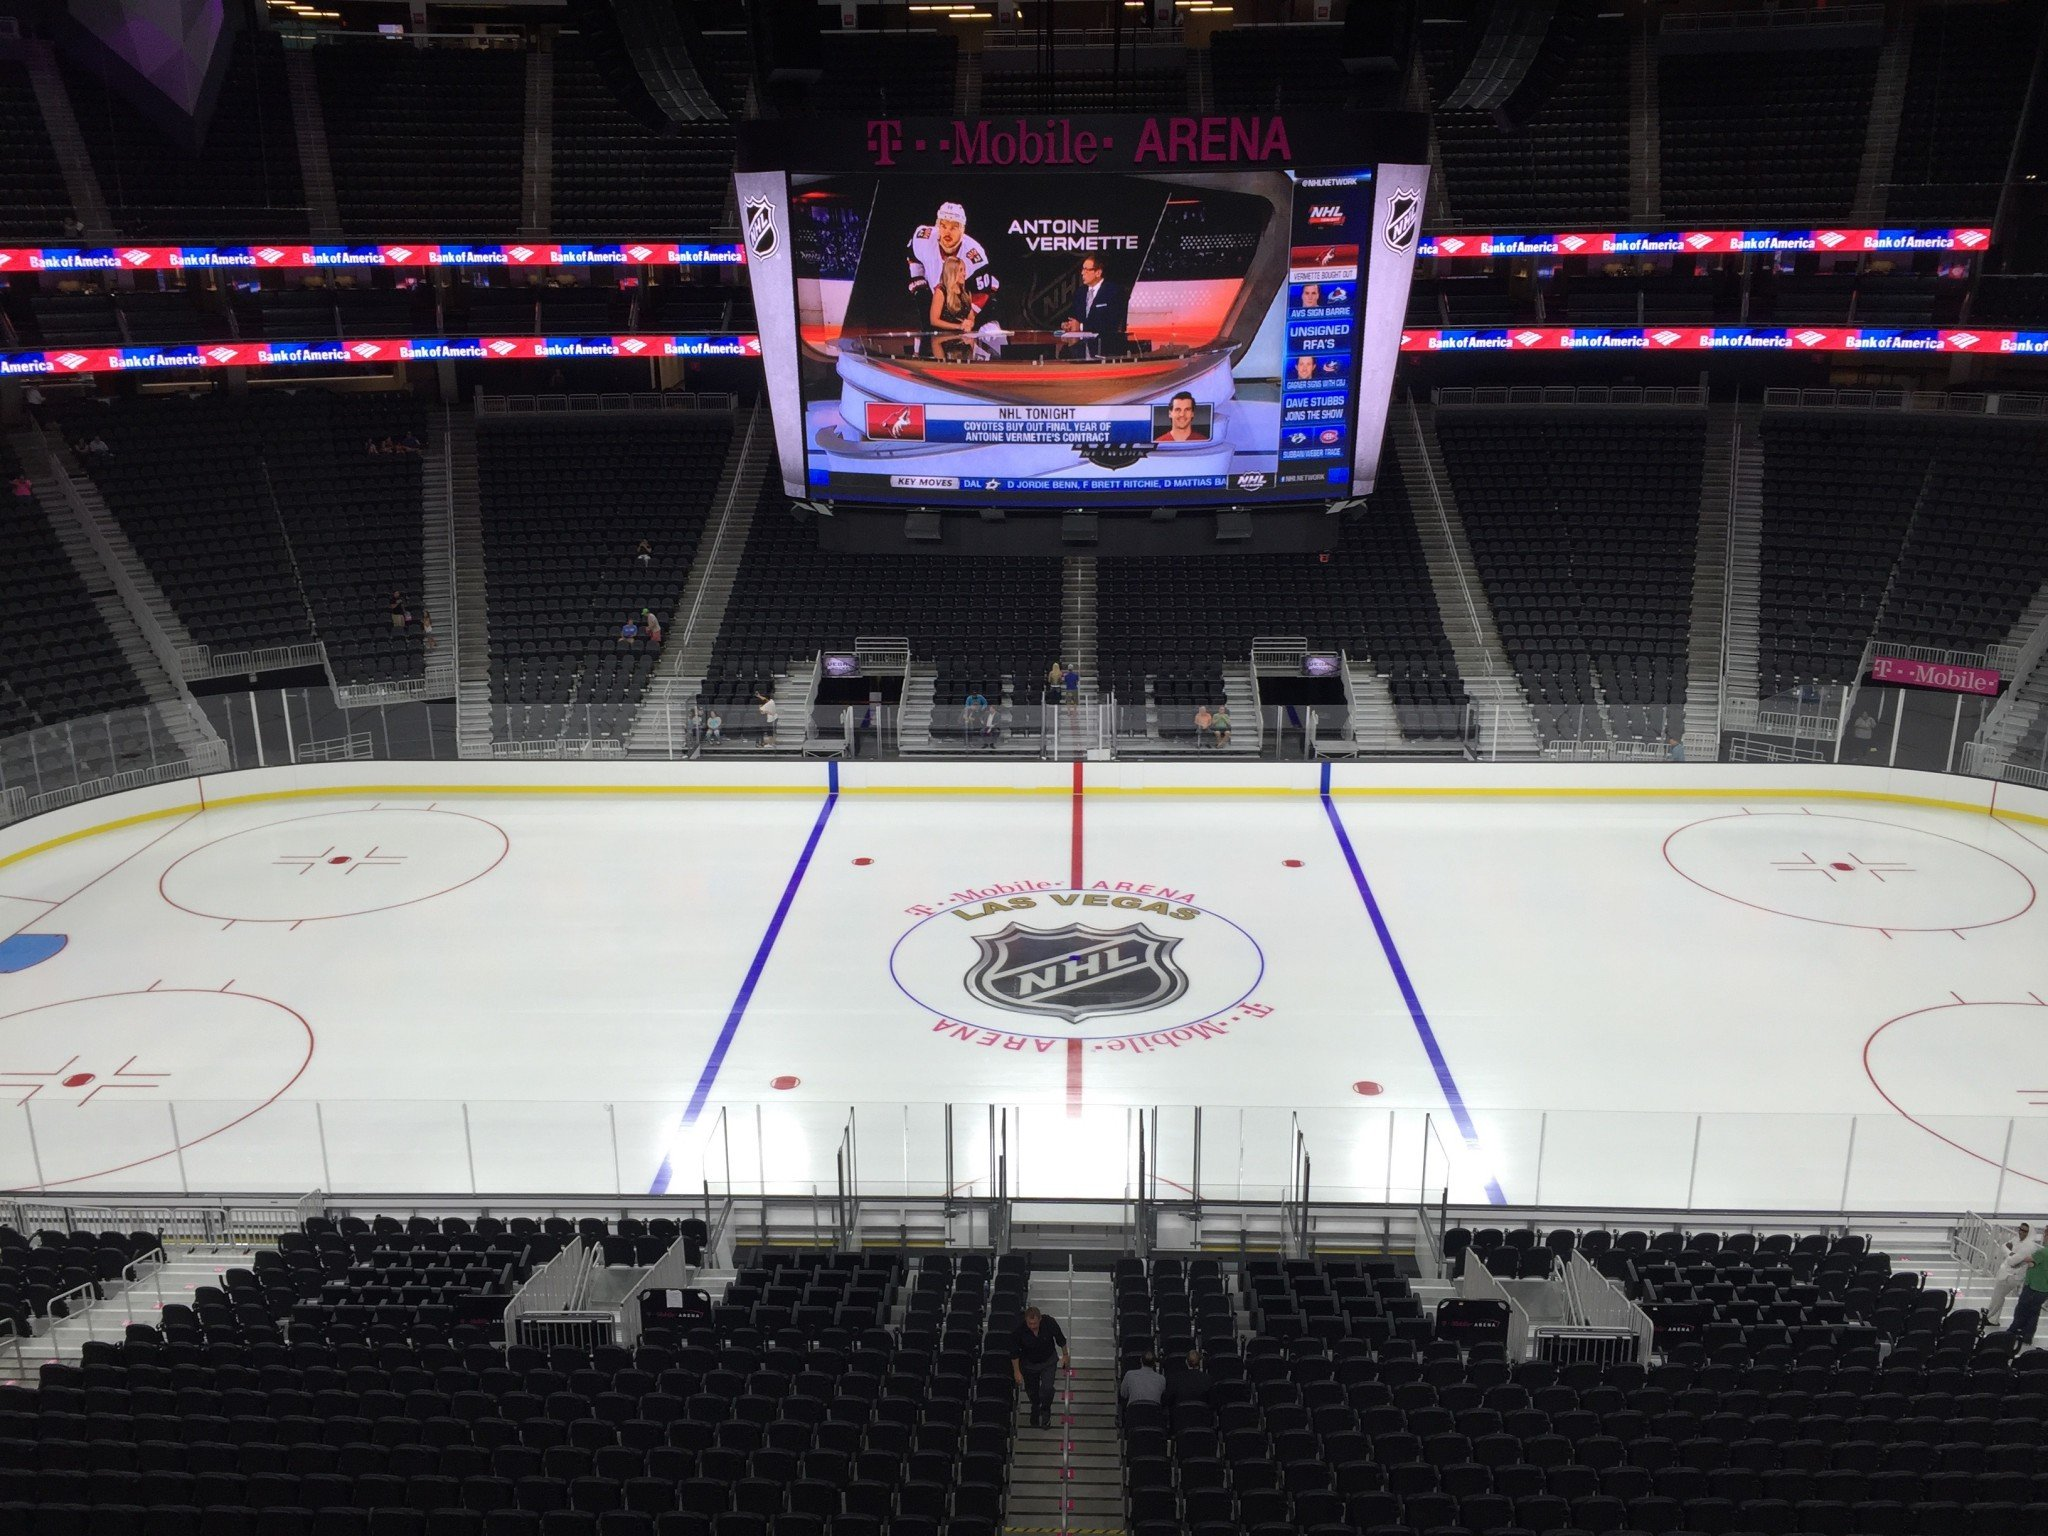 Best, Worst Seat From Each P-Section At T-Mobile Arena - SinBin vegas